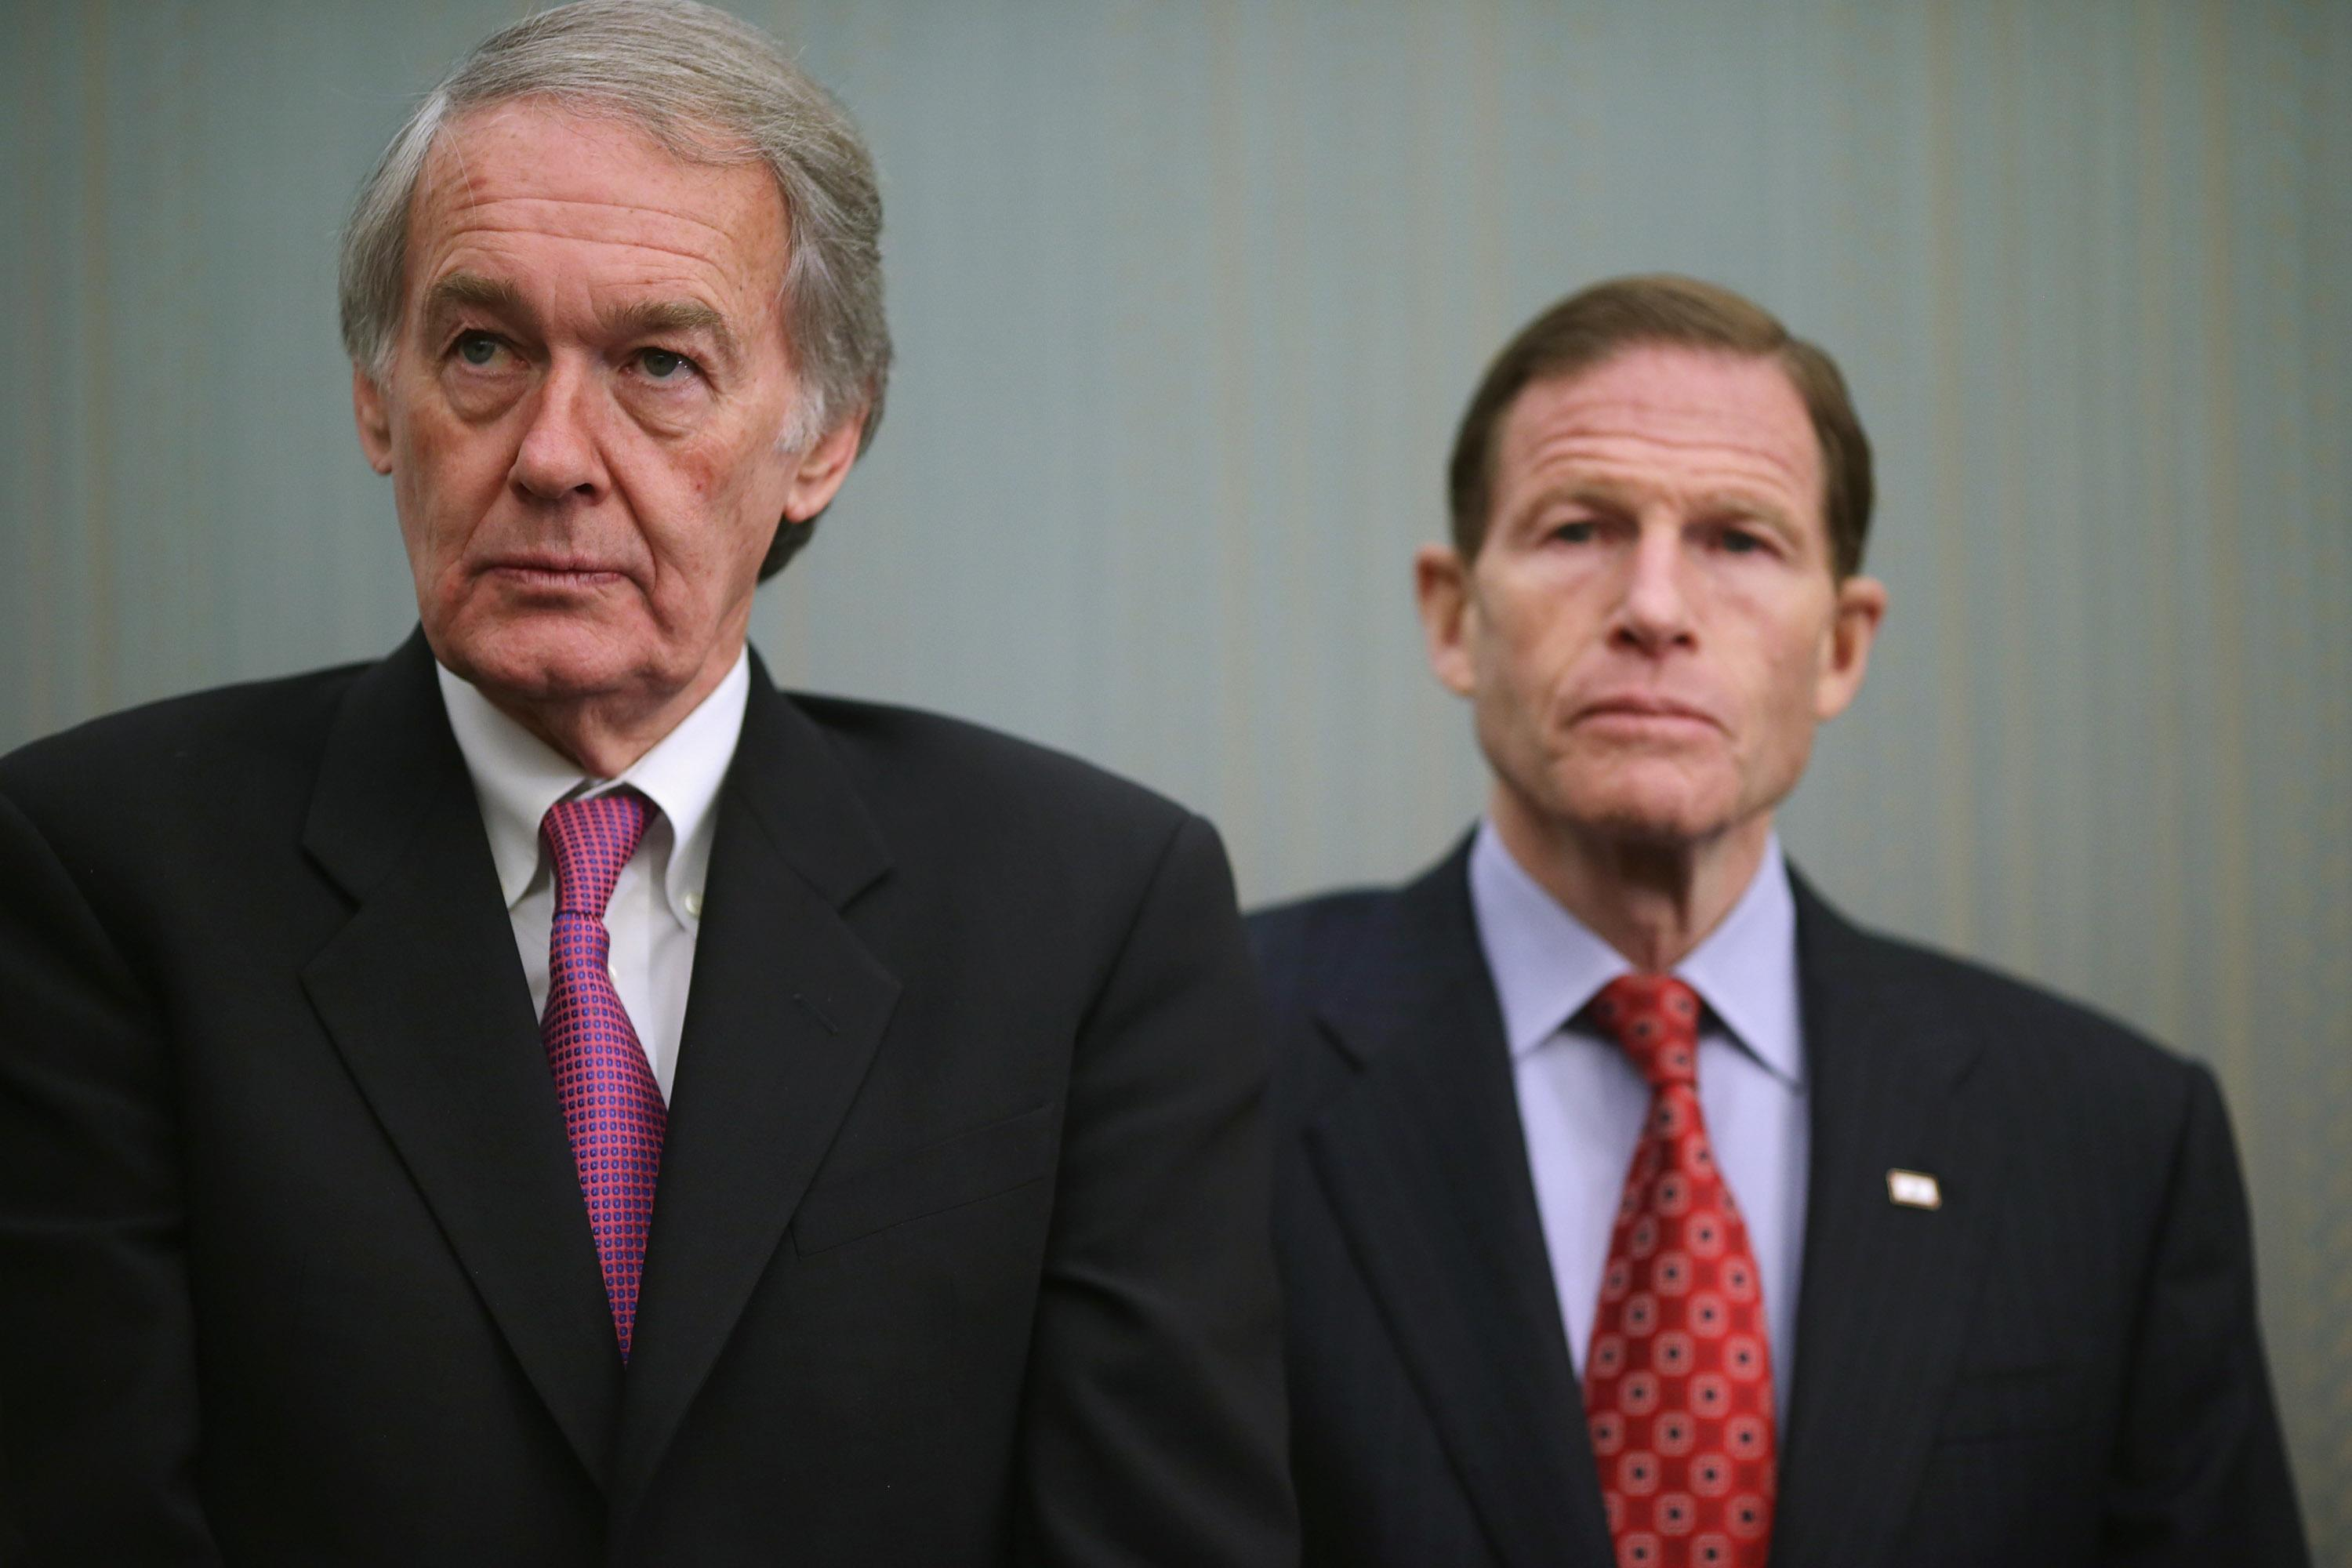 Senators Edward Markey (D-MA) (left) and Richard Blumenthal (D-CT), pictured during a press conference at the US Capitol in Washington, DC, on March 27, 2014 (AFP Photo/Chip Somodevilla)